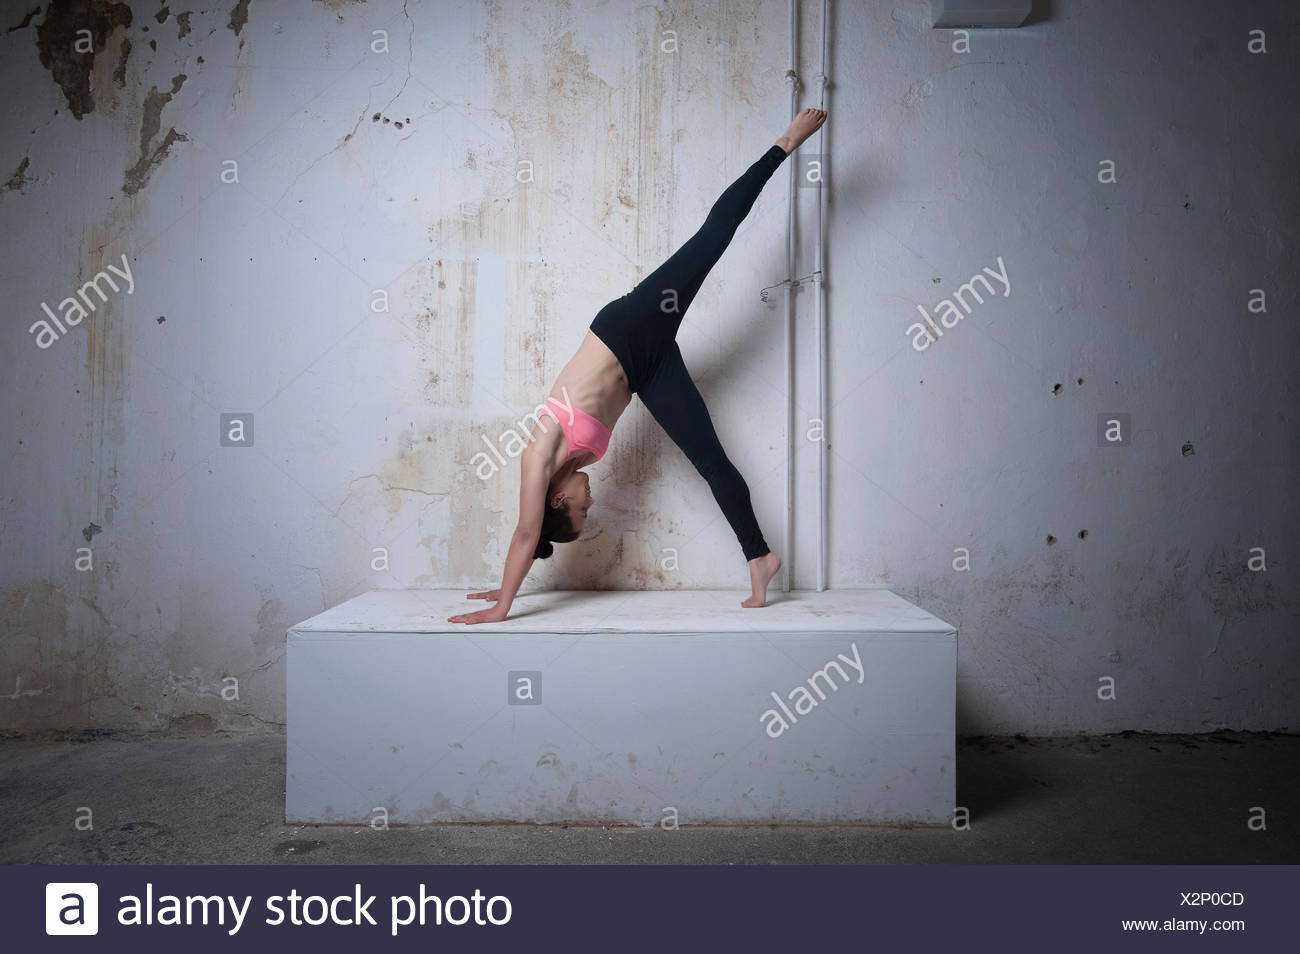 Mid adult woman practicing one legged downward facing dog position on concrete block, Munich, Bavaria, Germany - Stock Image